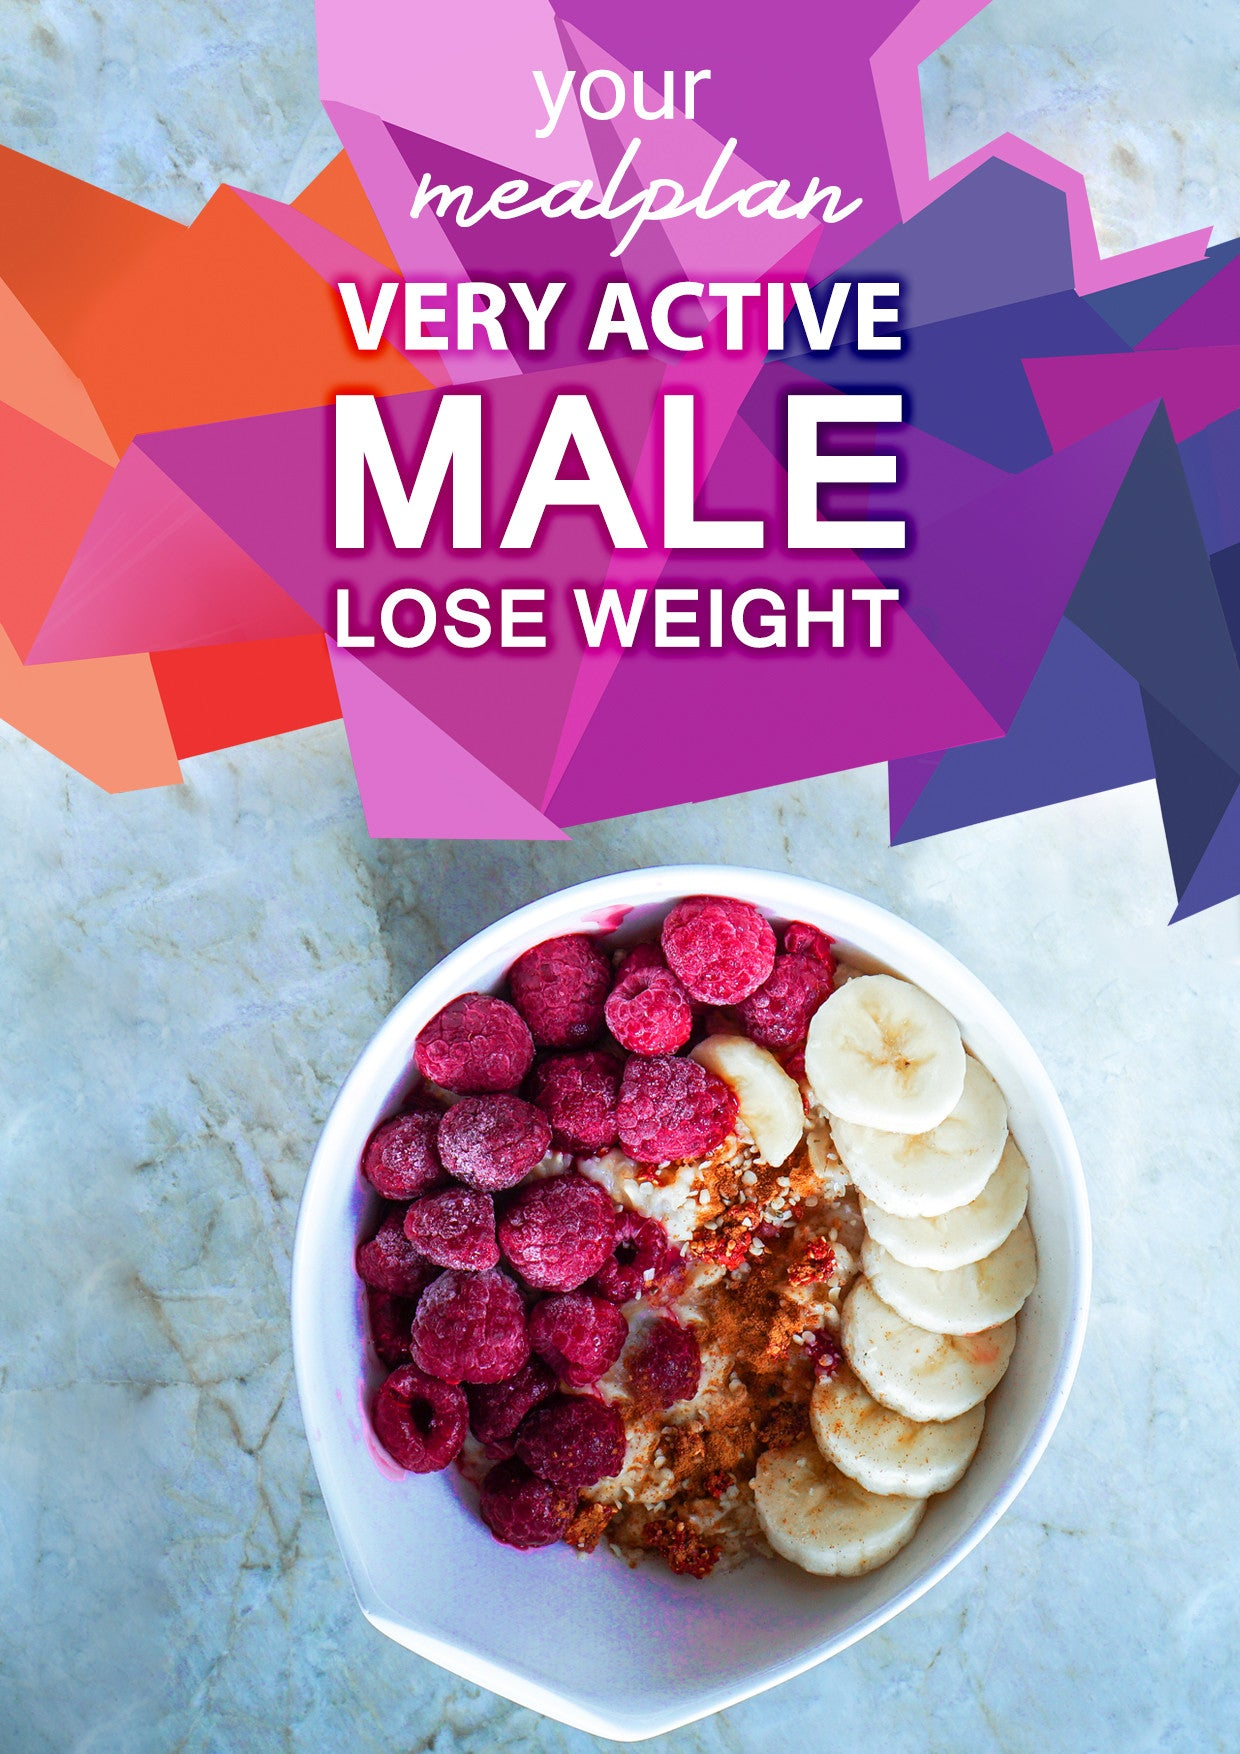 Very Active Male - Lose Weight